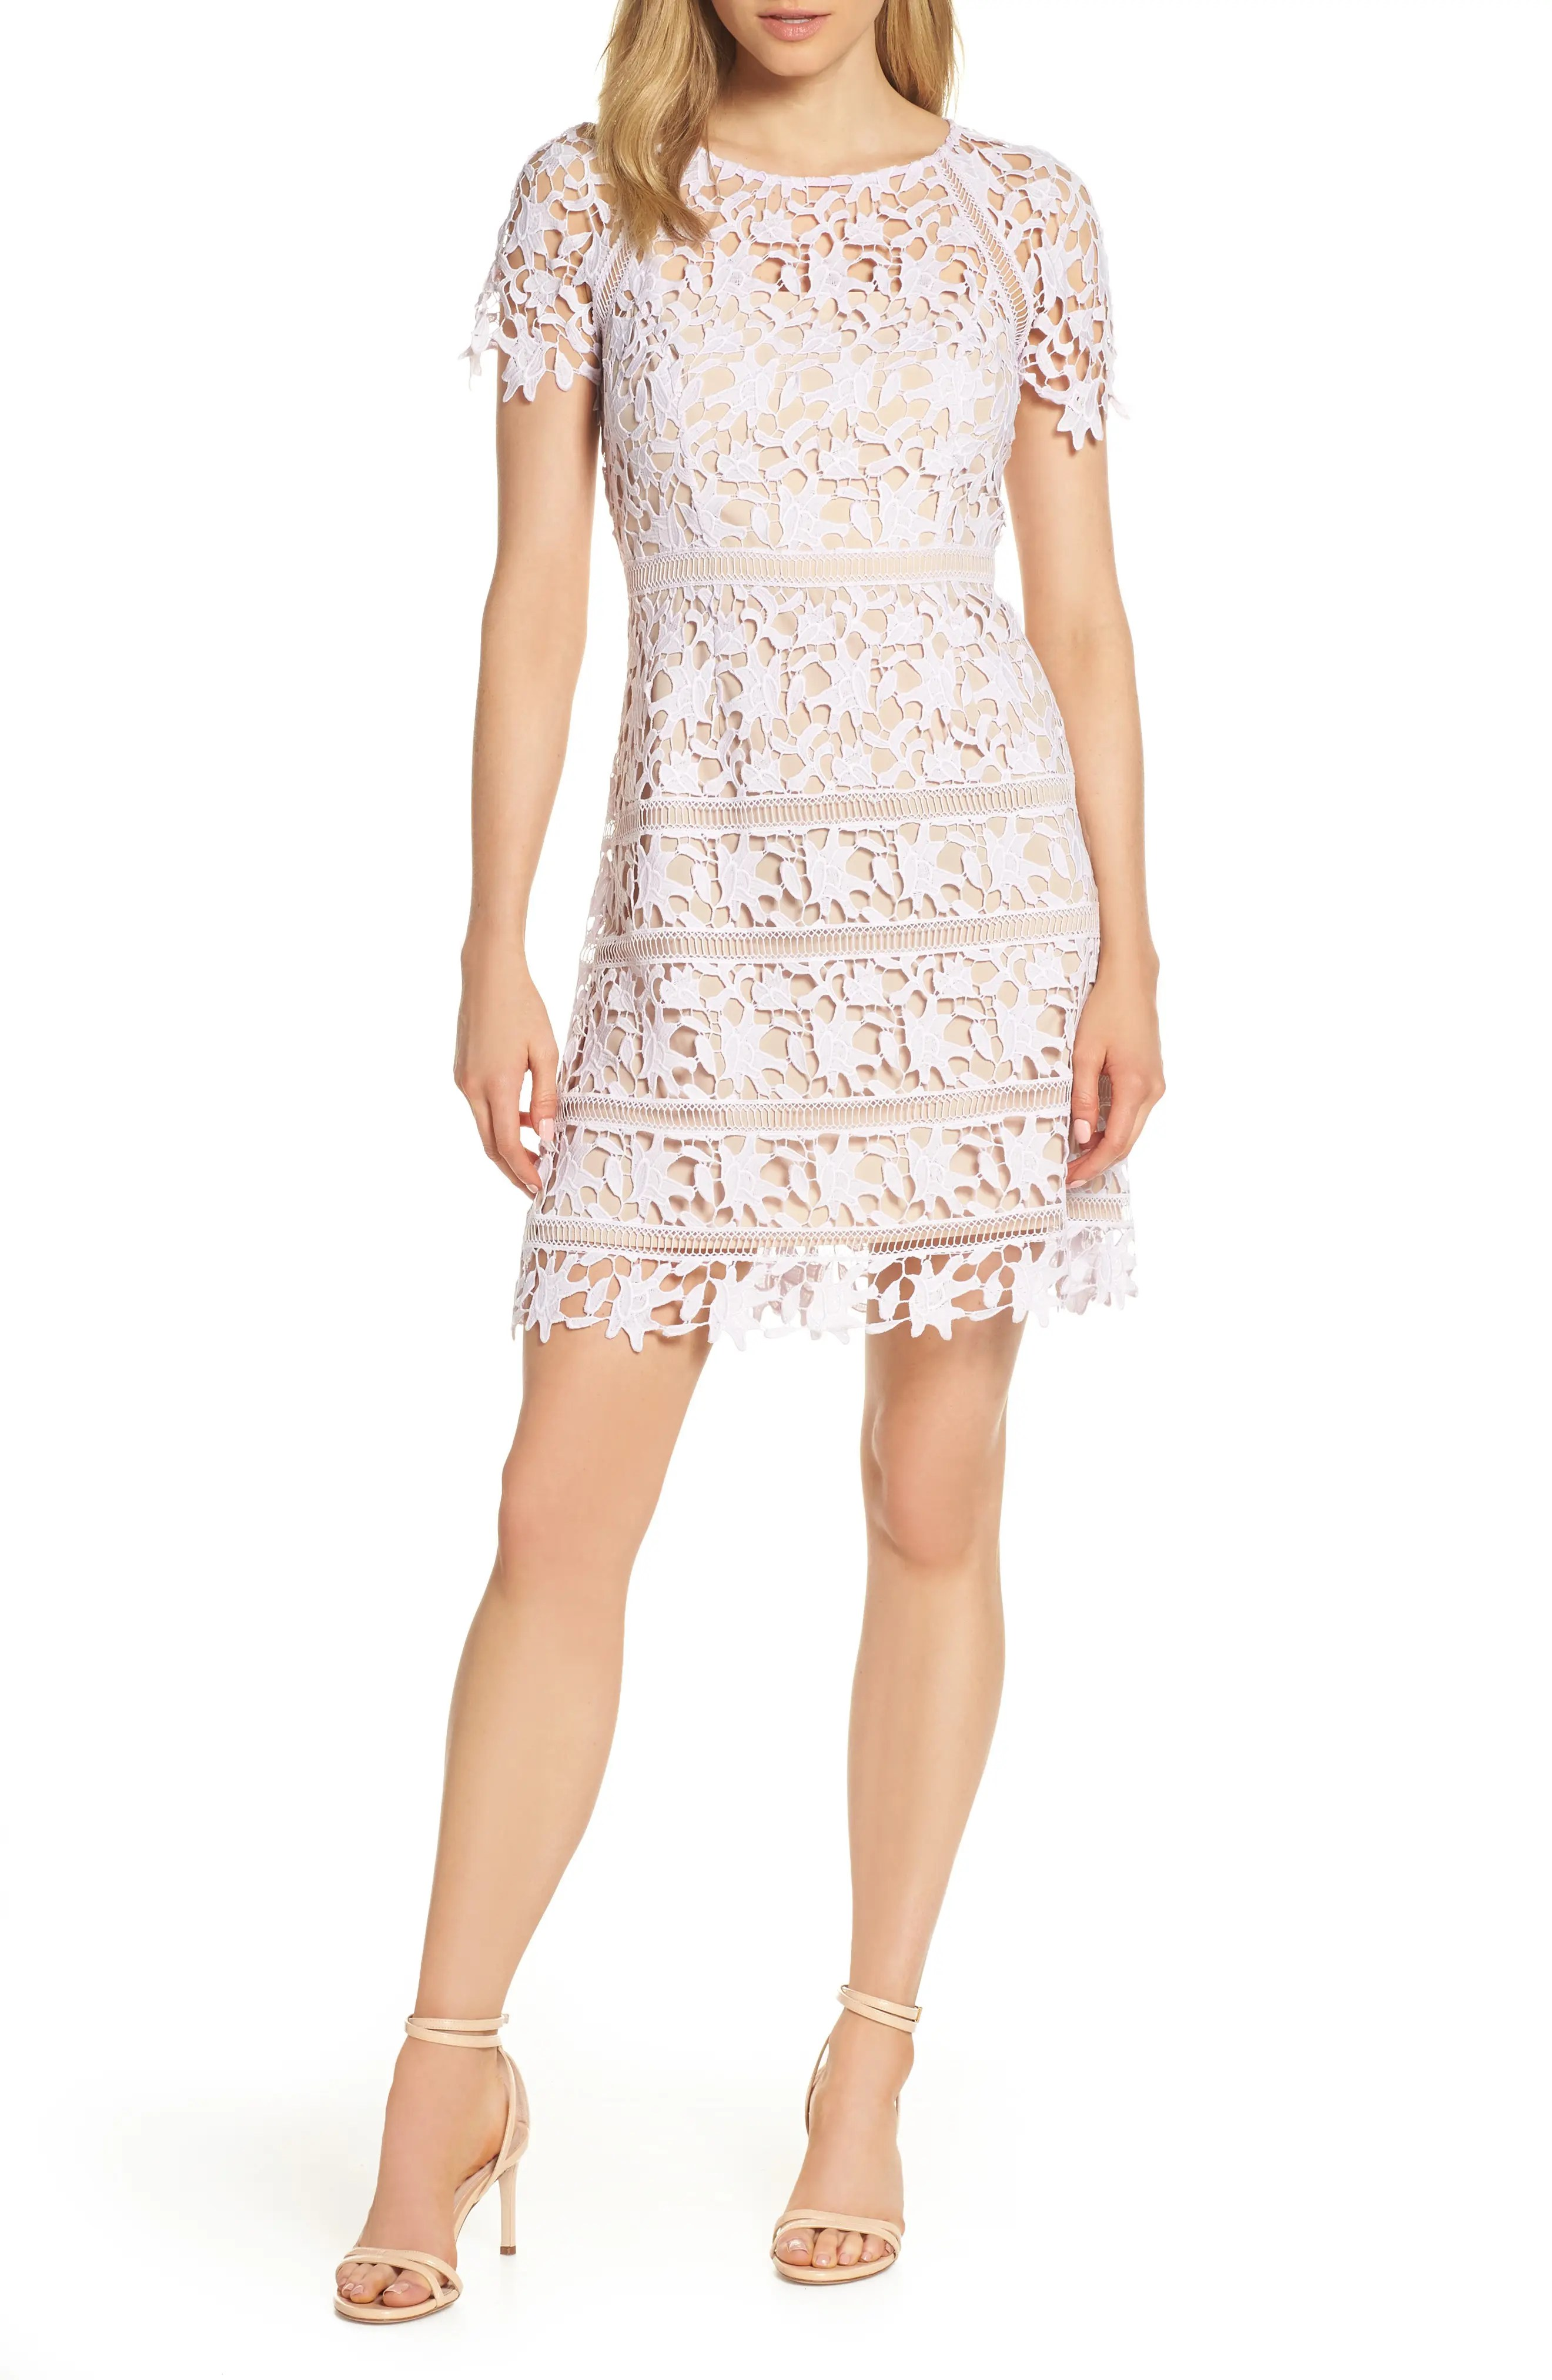 Eliza  open lace dress regular  petite also size clothing for women nordstrom rh shoprdstrom